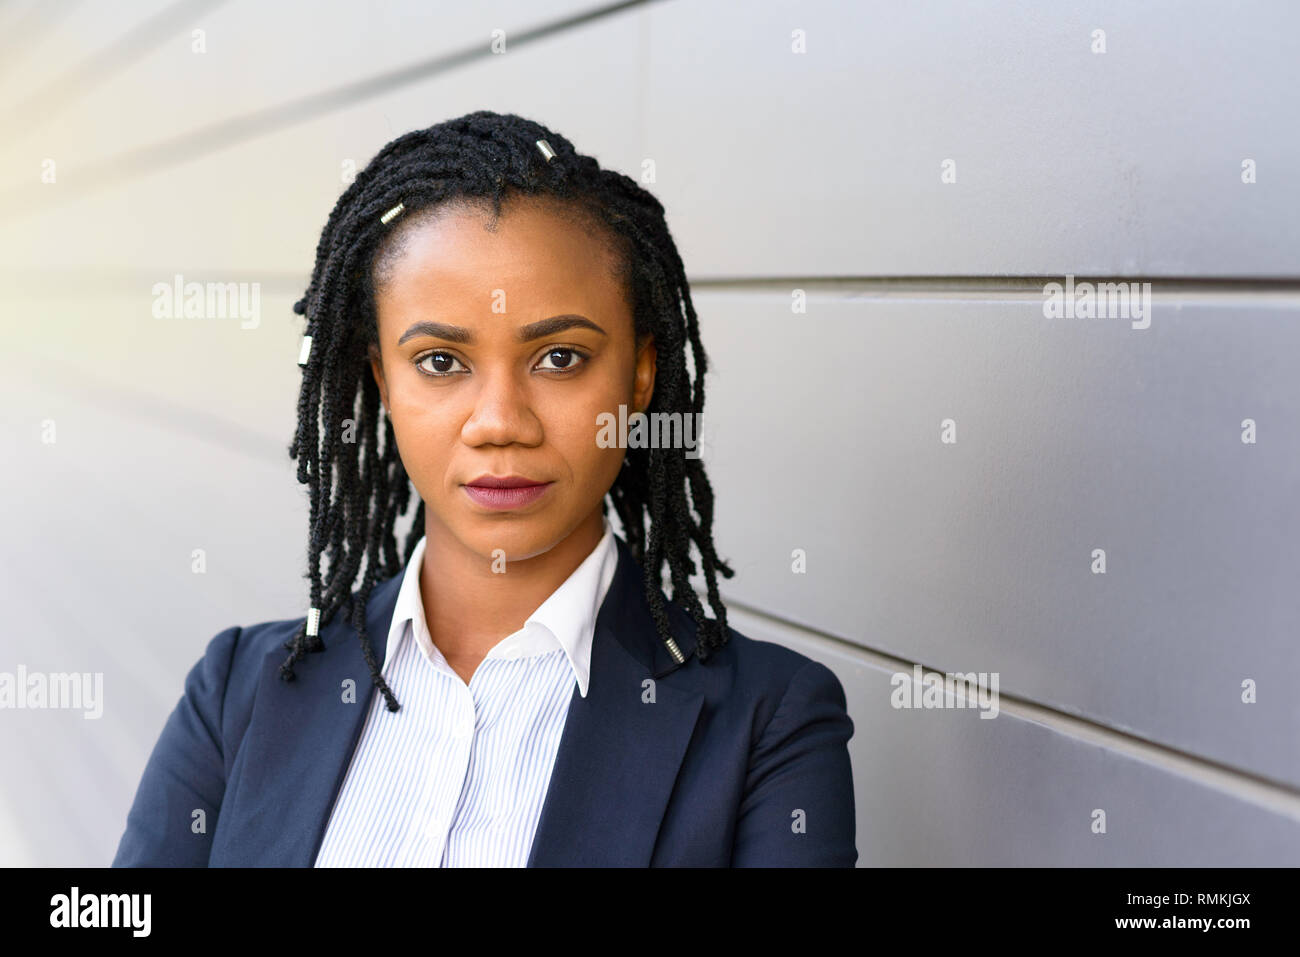 Outdoor portrait of serious elegant African American woman standing against wall - Stock Image